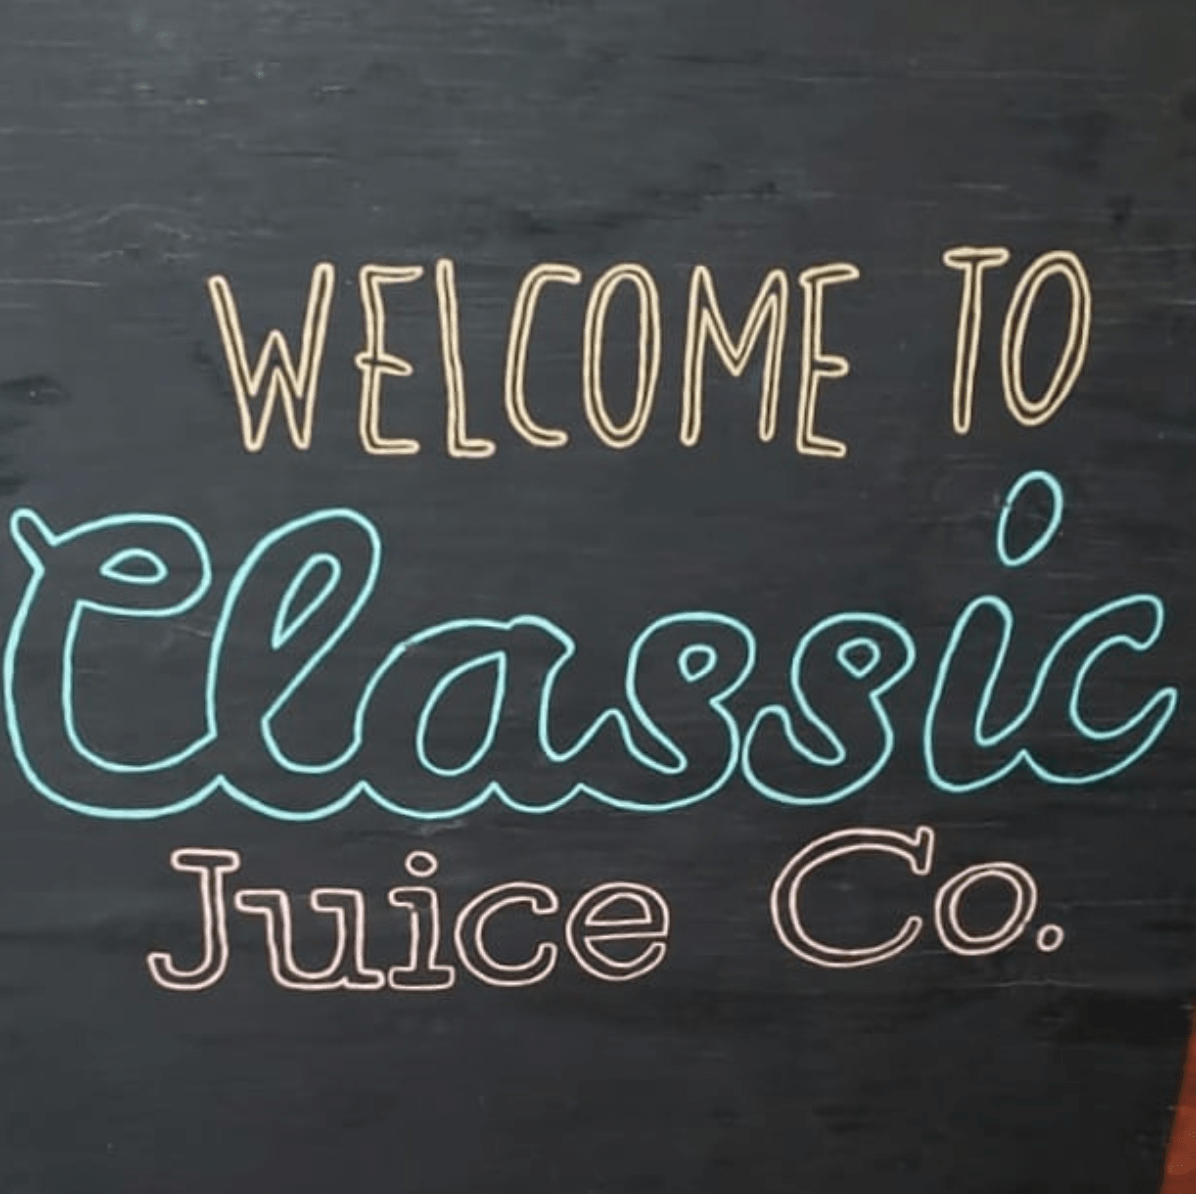 Classic Juice company and their cold-pressed juice